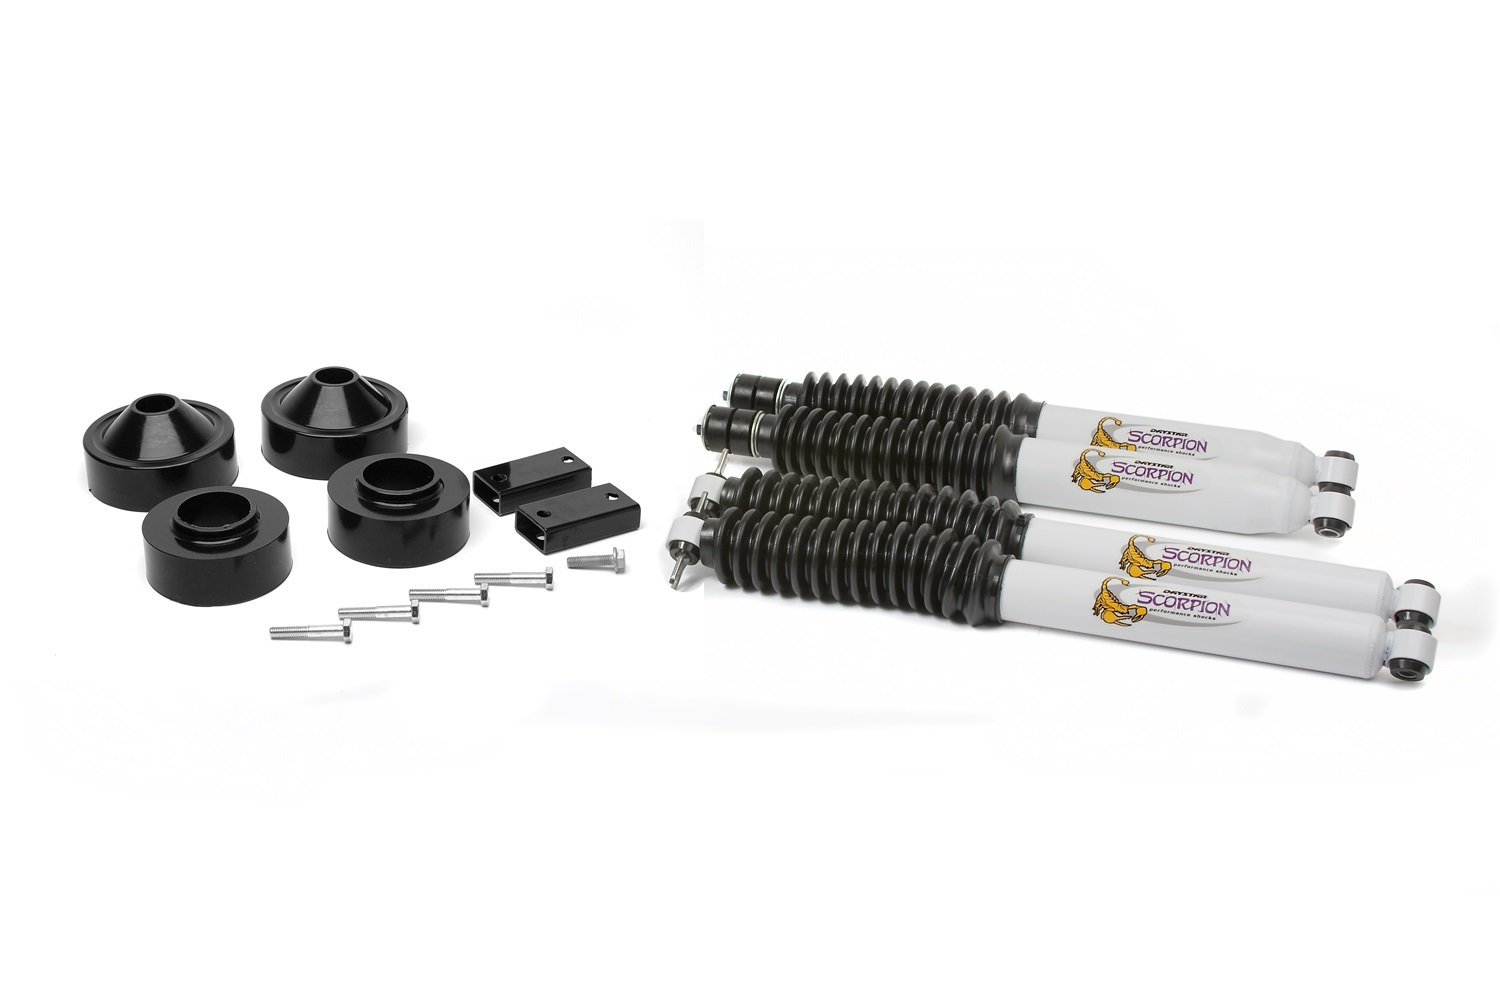 KJ09159BK Jeep JK Wrangler 1.75 Lift Kit with front and rear shocks fits 2007 to 2017 2//4WD Made in America Daystar all transmissions